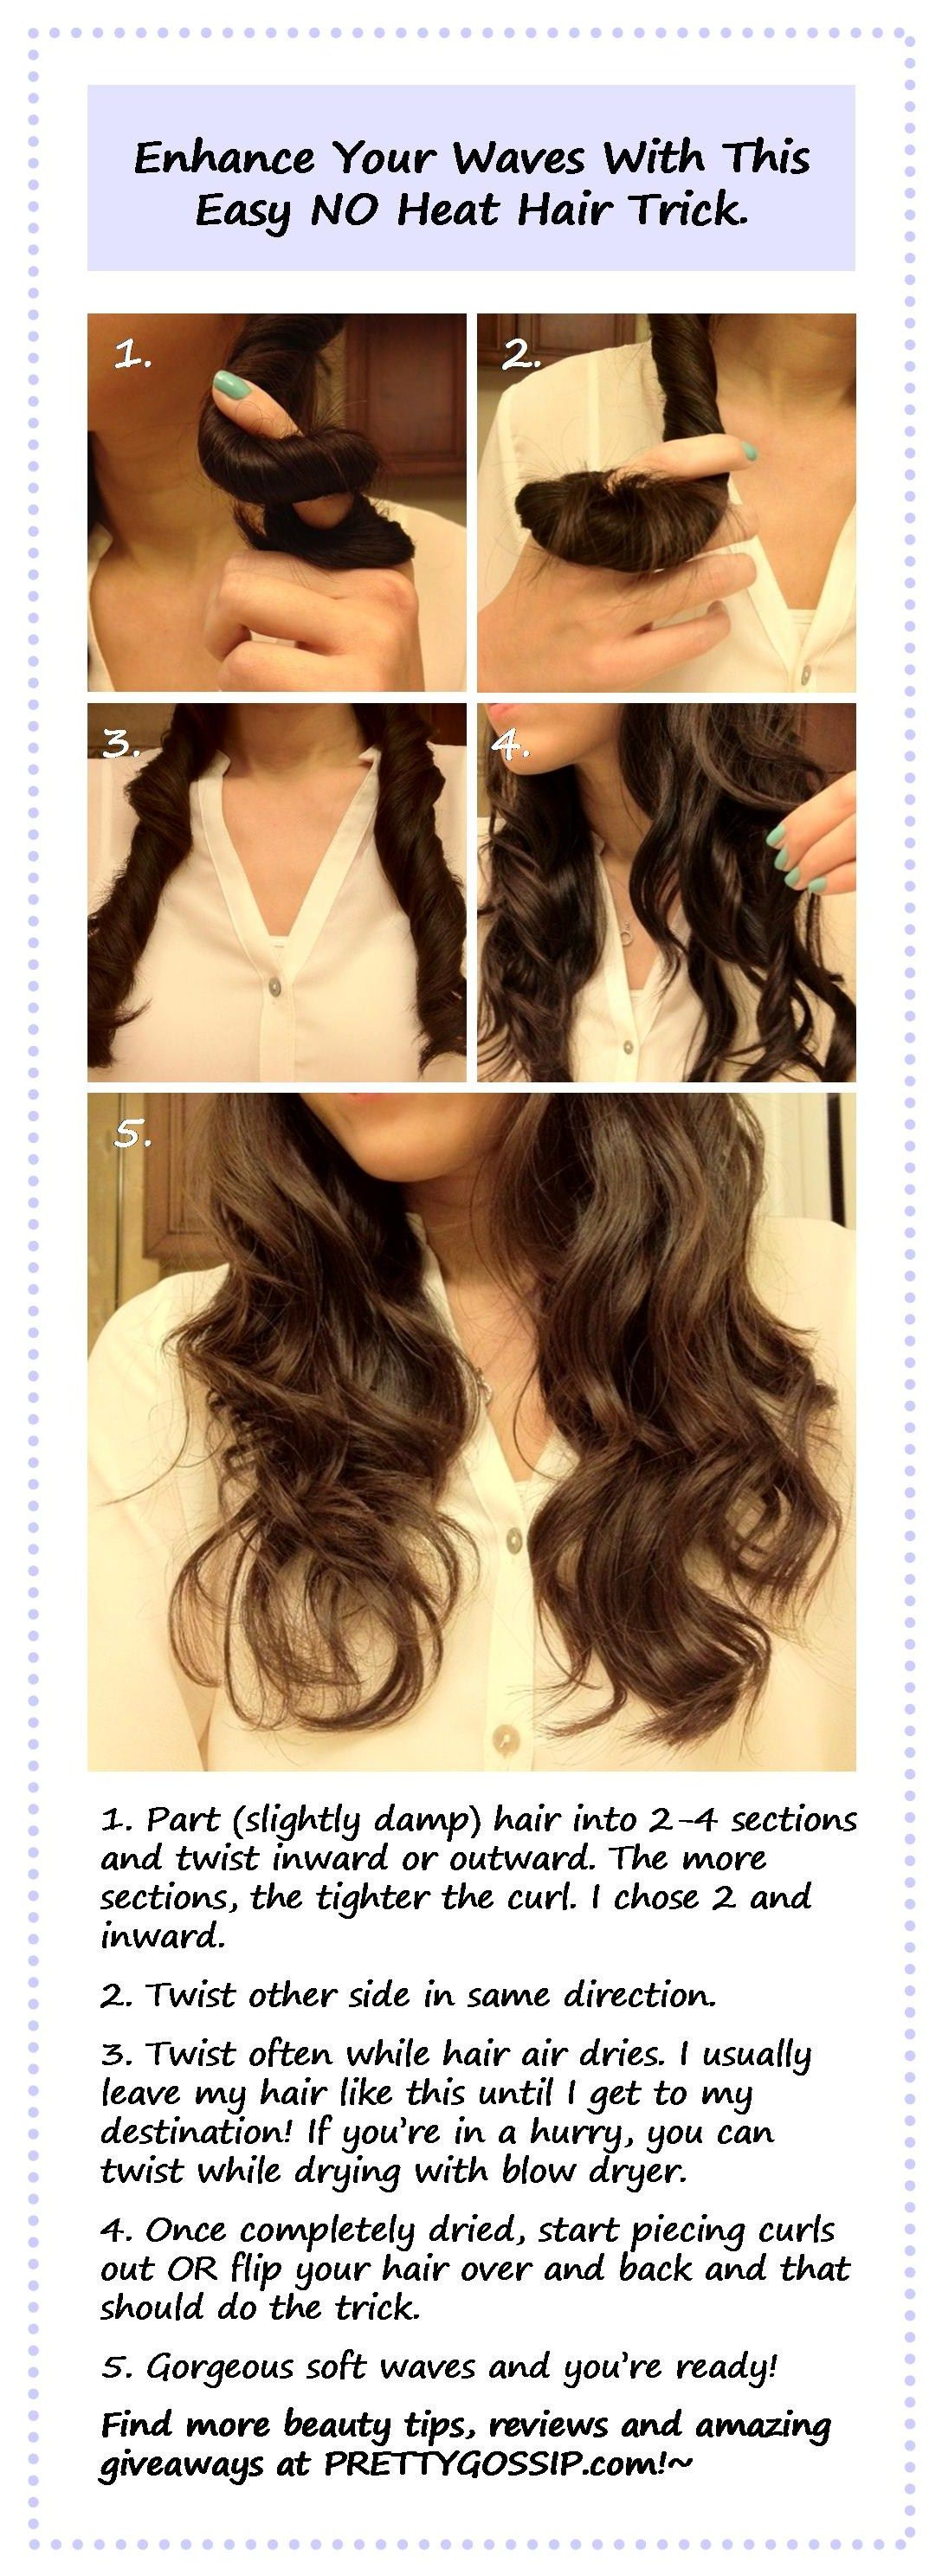 Hereus a easy hair trick for wavy to curly hair hair beauty